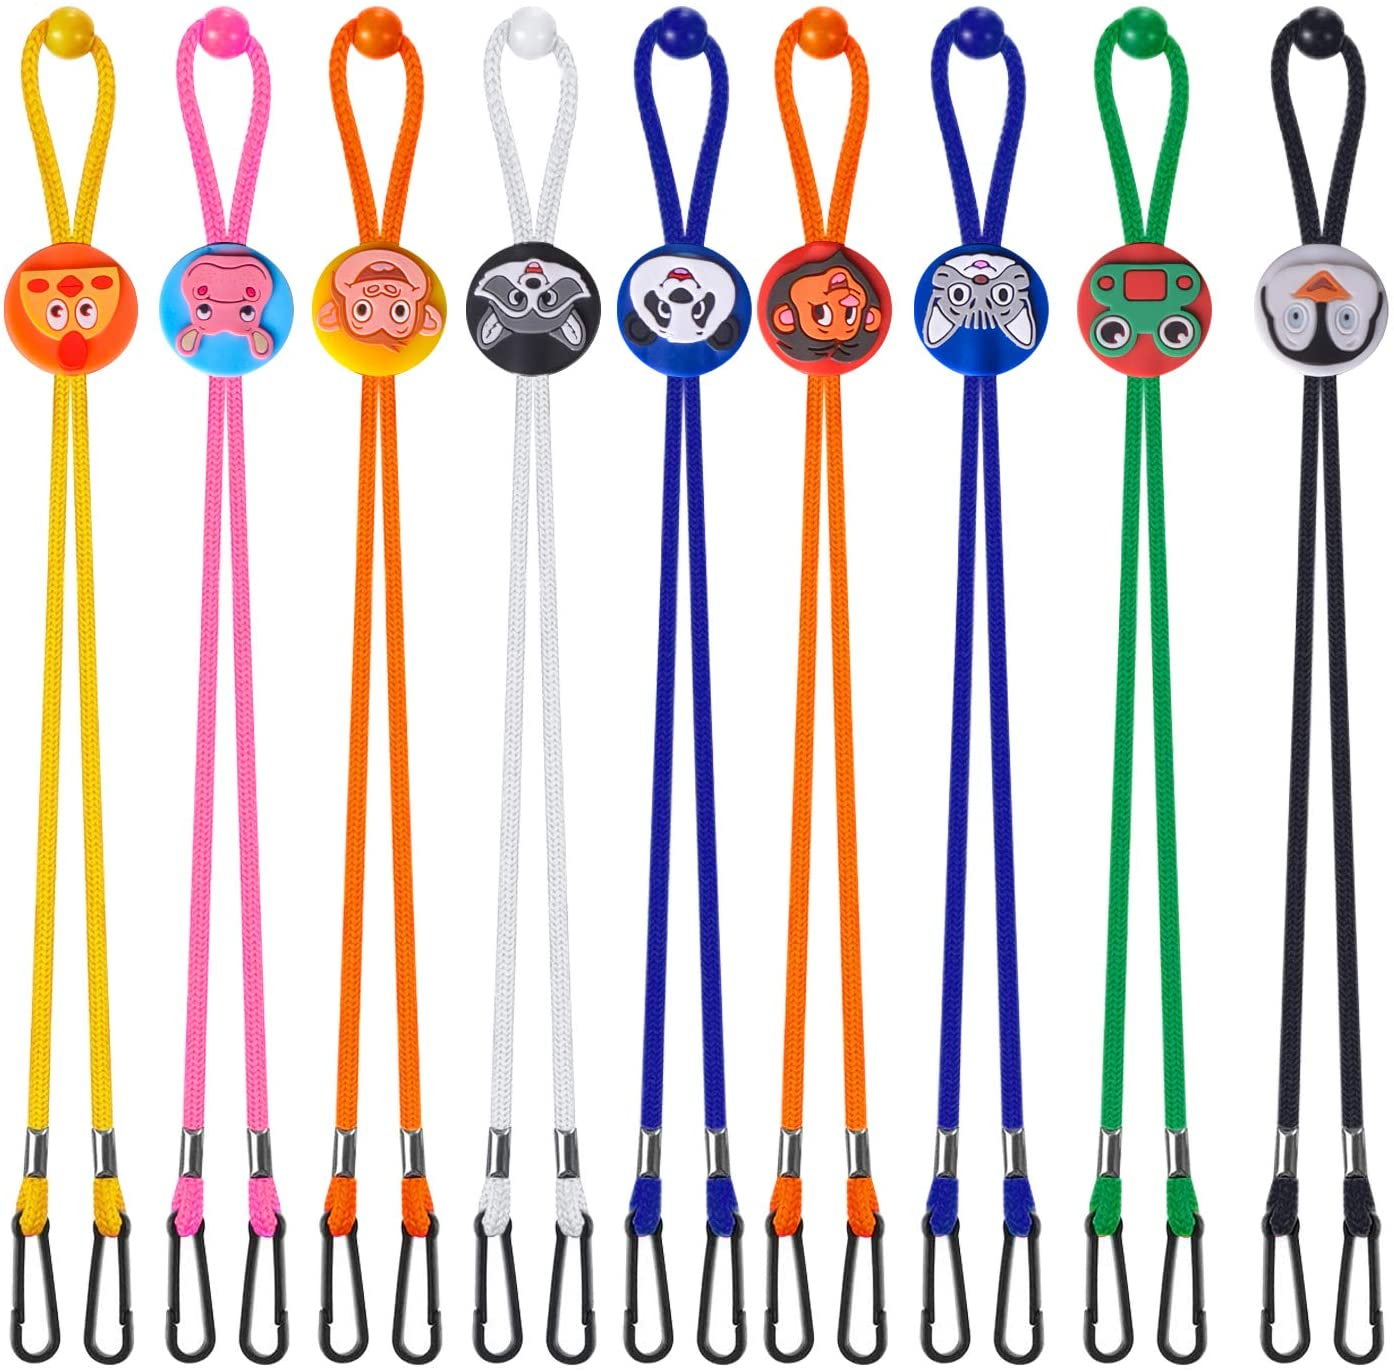 9 Pieces Kids Cartoon Adjustable Face Cover Lanyard Face Cover Lanyard Neck Strap Buckles Holder Flexible Bib Clips for Boys and Girls (9, Cartoon)